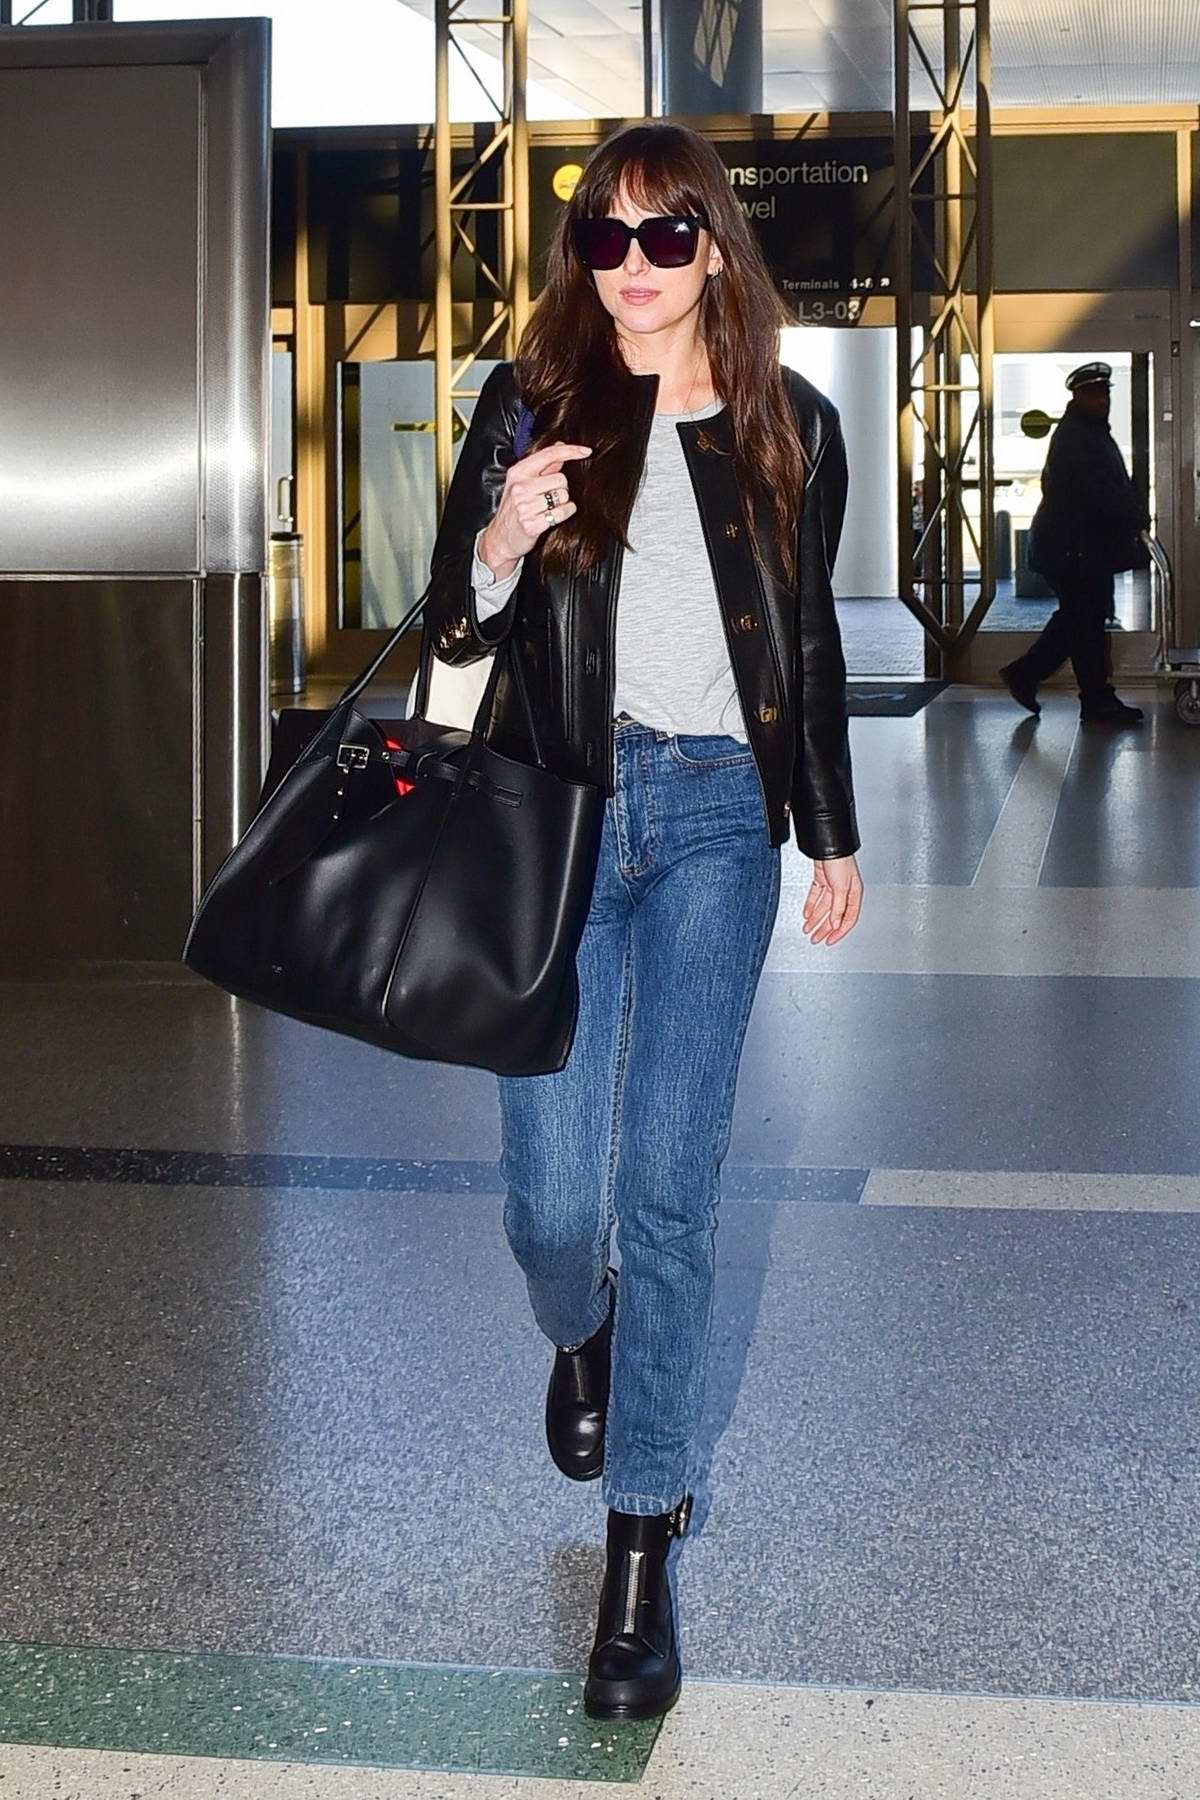 Dakota Johnson seen at the airport on Valentine's Day as she arrives to catch a flight out of LAX in Los Angeles